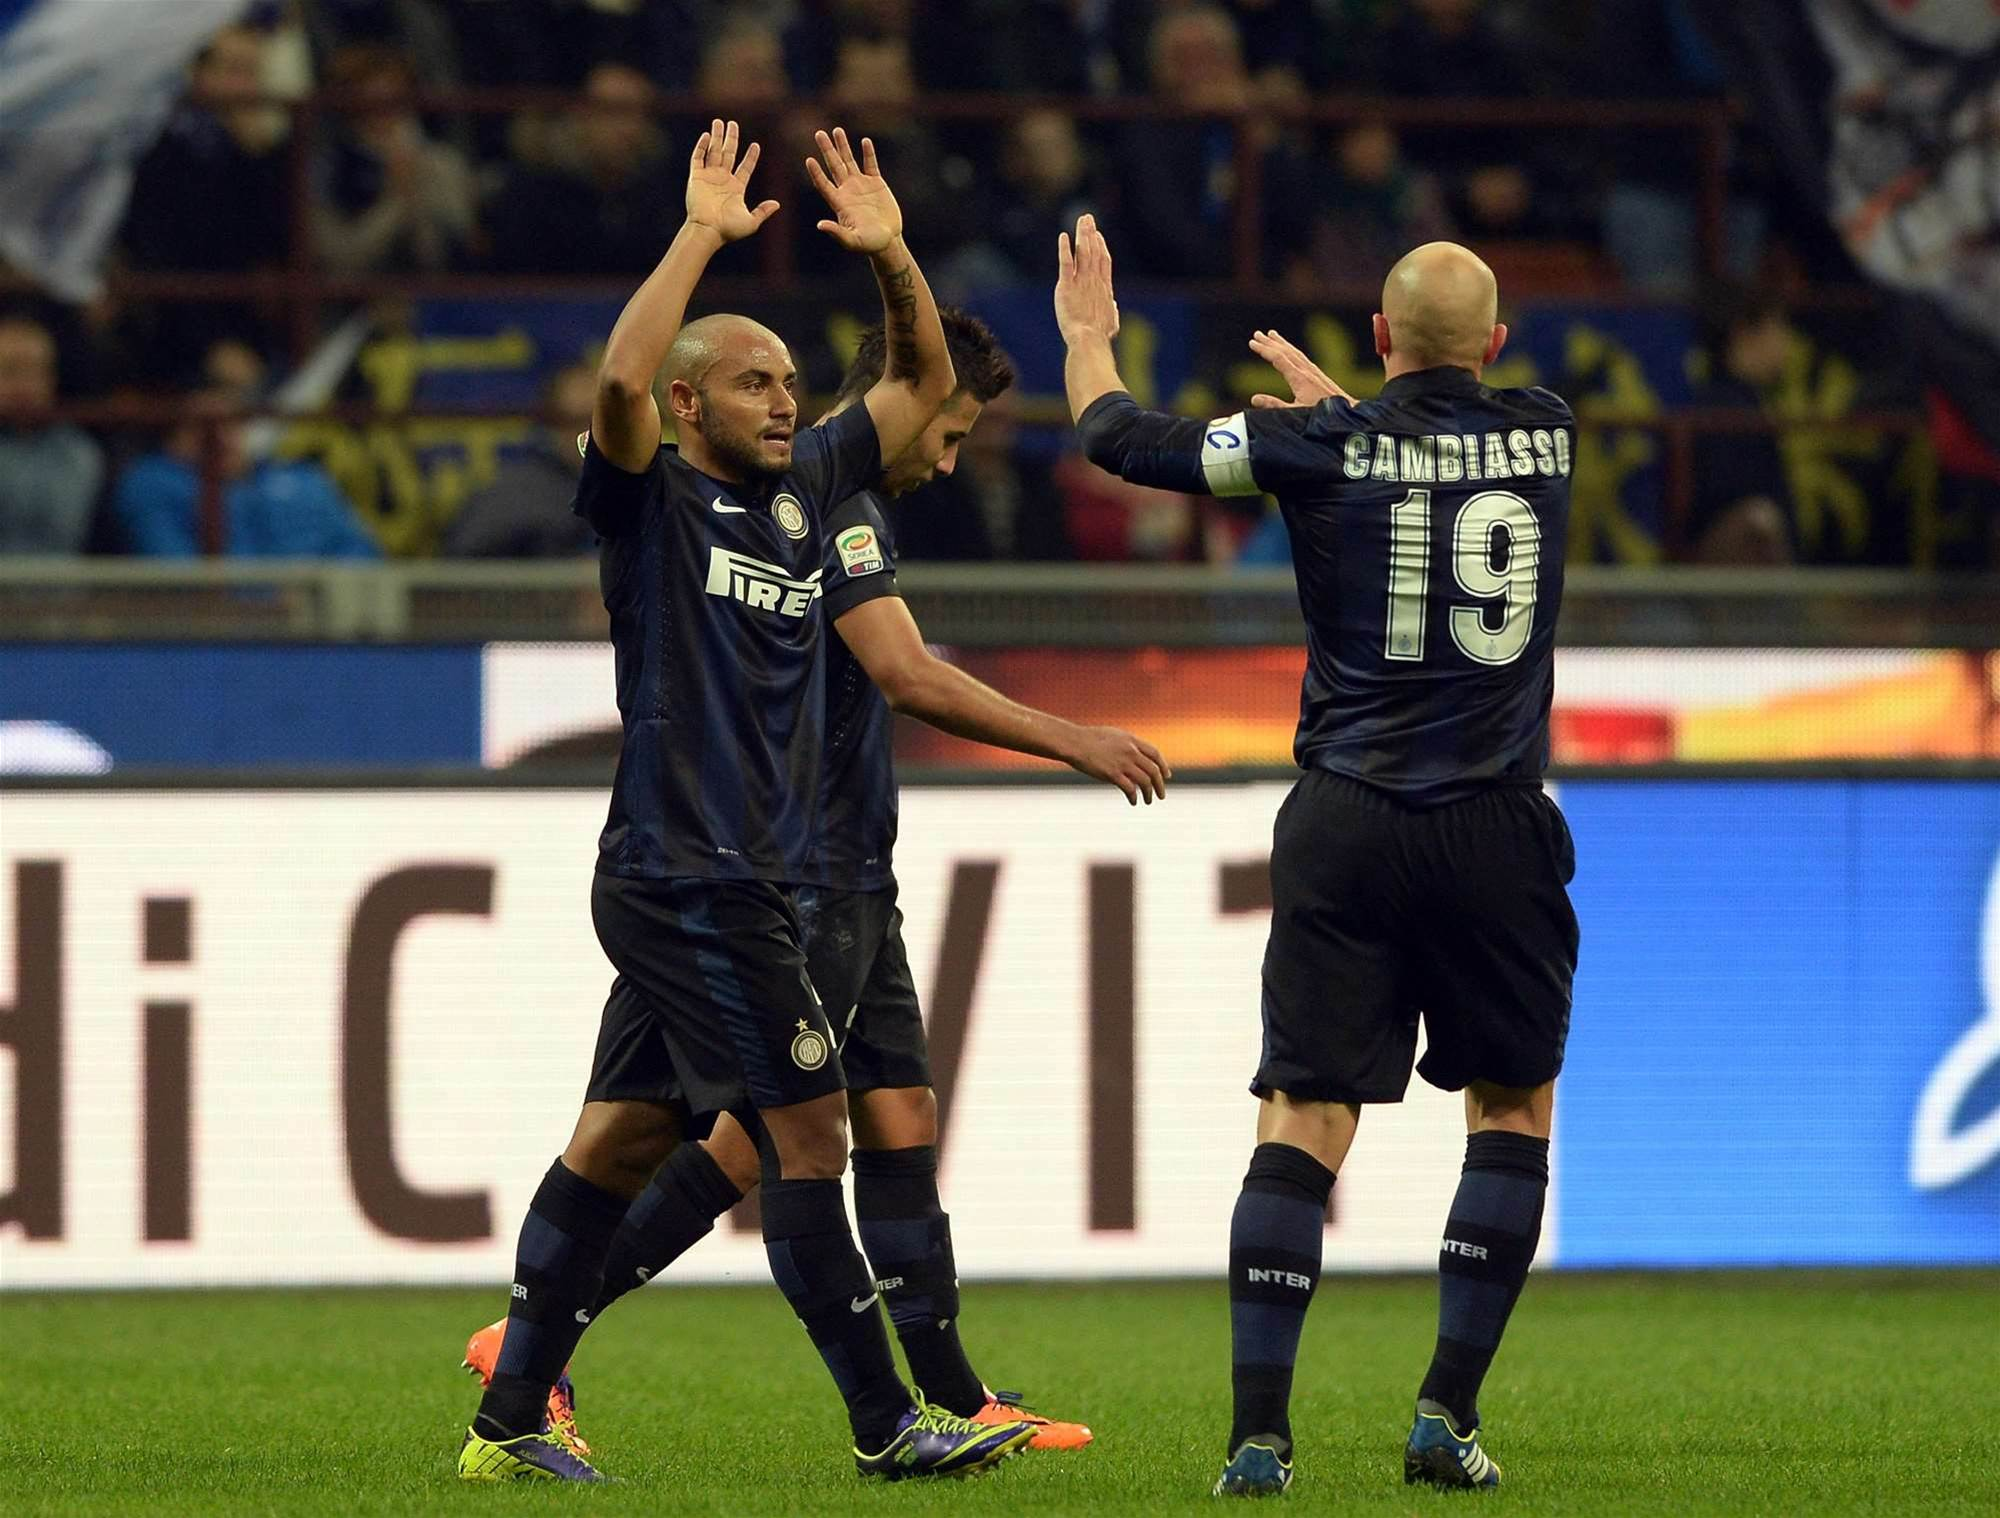 Own goal helps Inter defeat Livorno 2-0